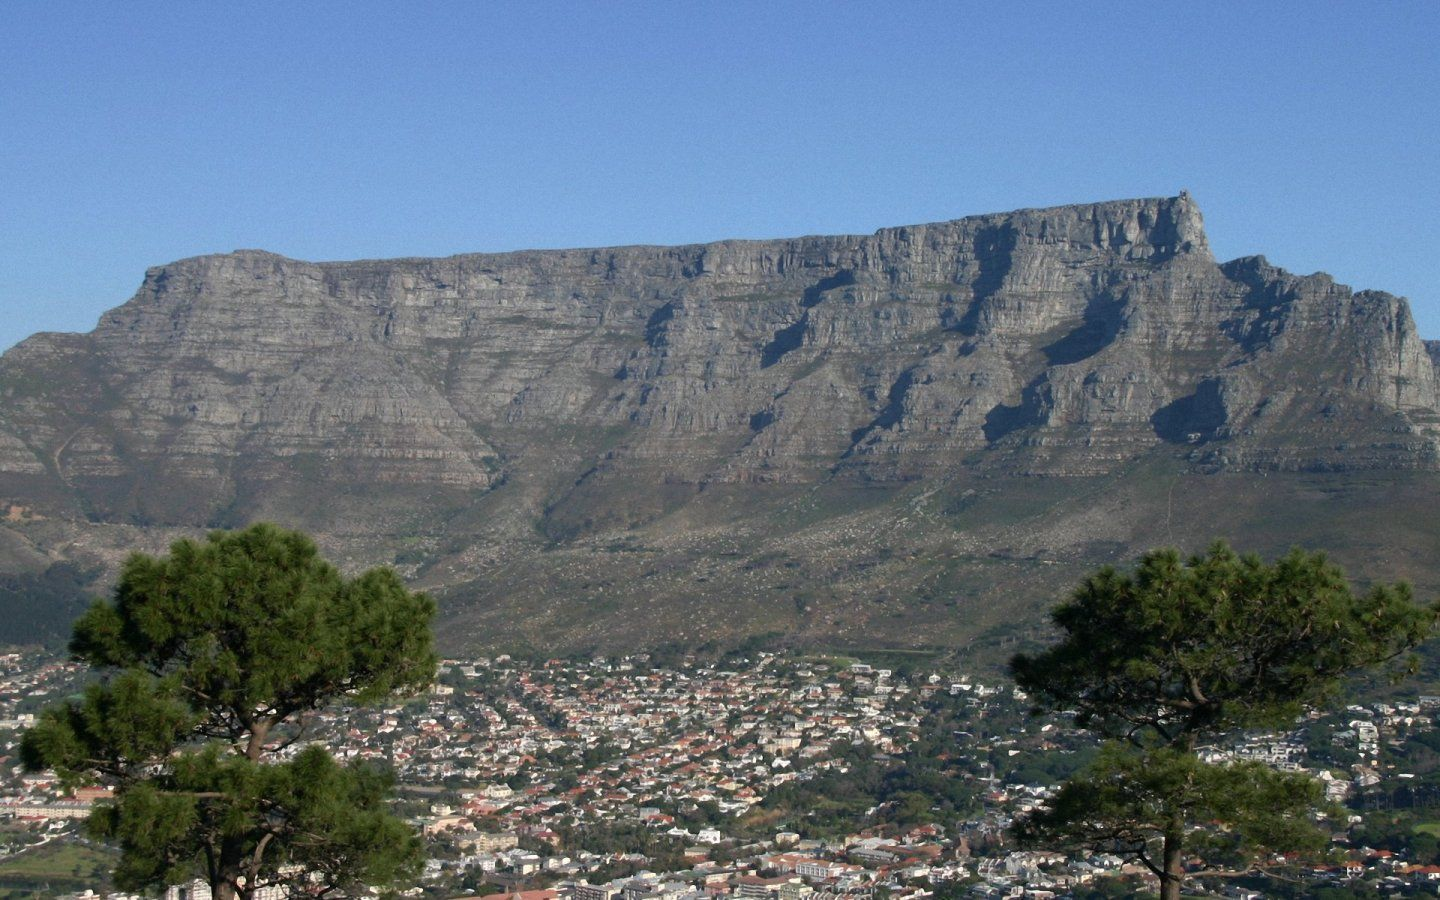 Table Mountain Other size Wallpaper 1440x900 Hot HD Wallpaper 1440x900